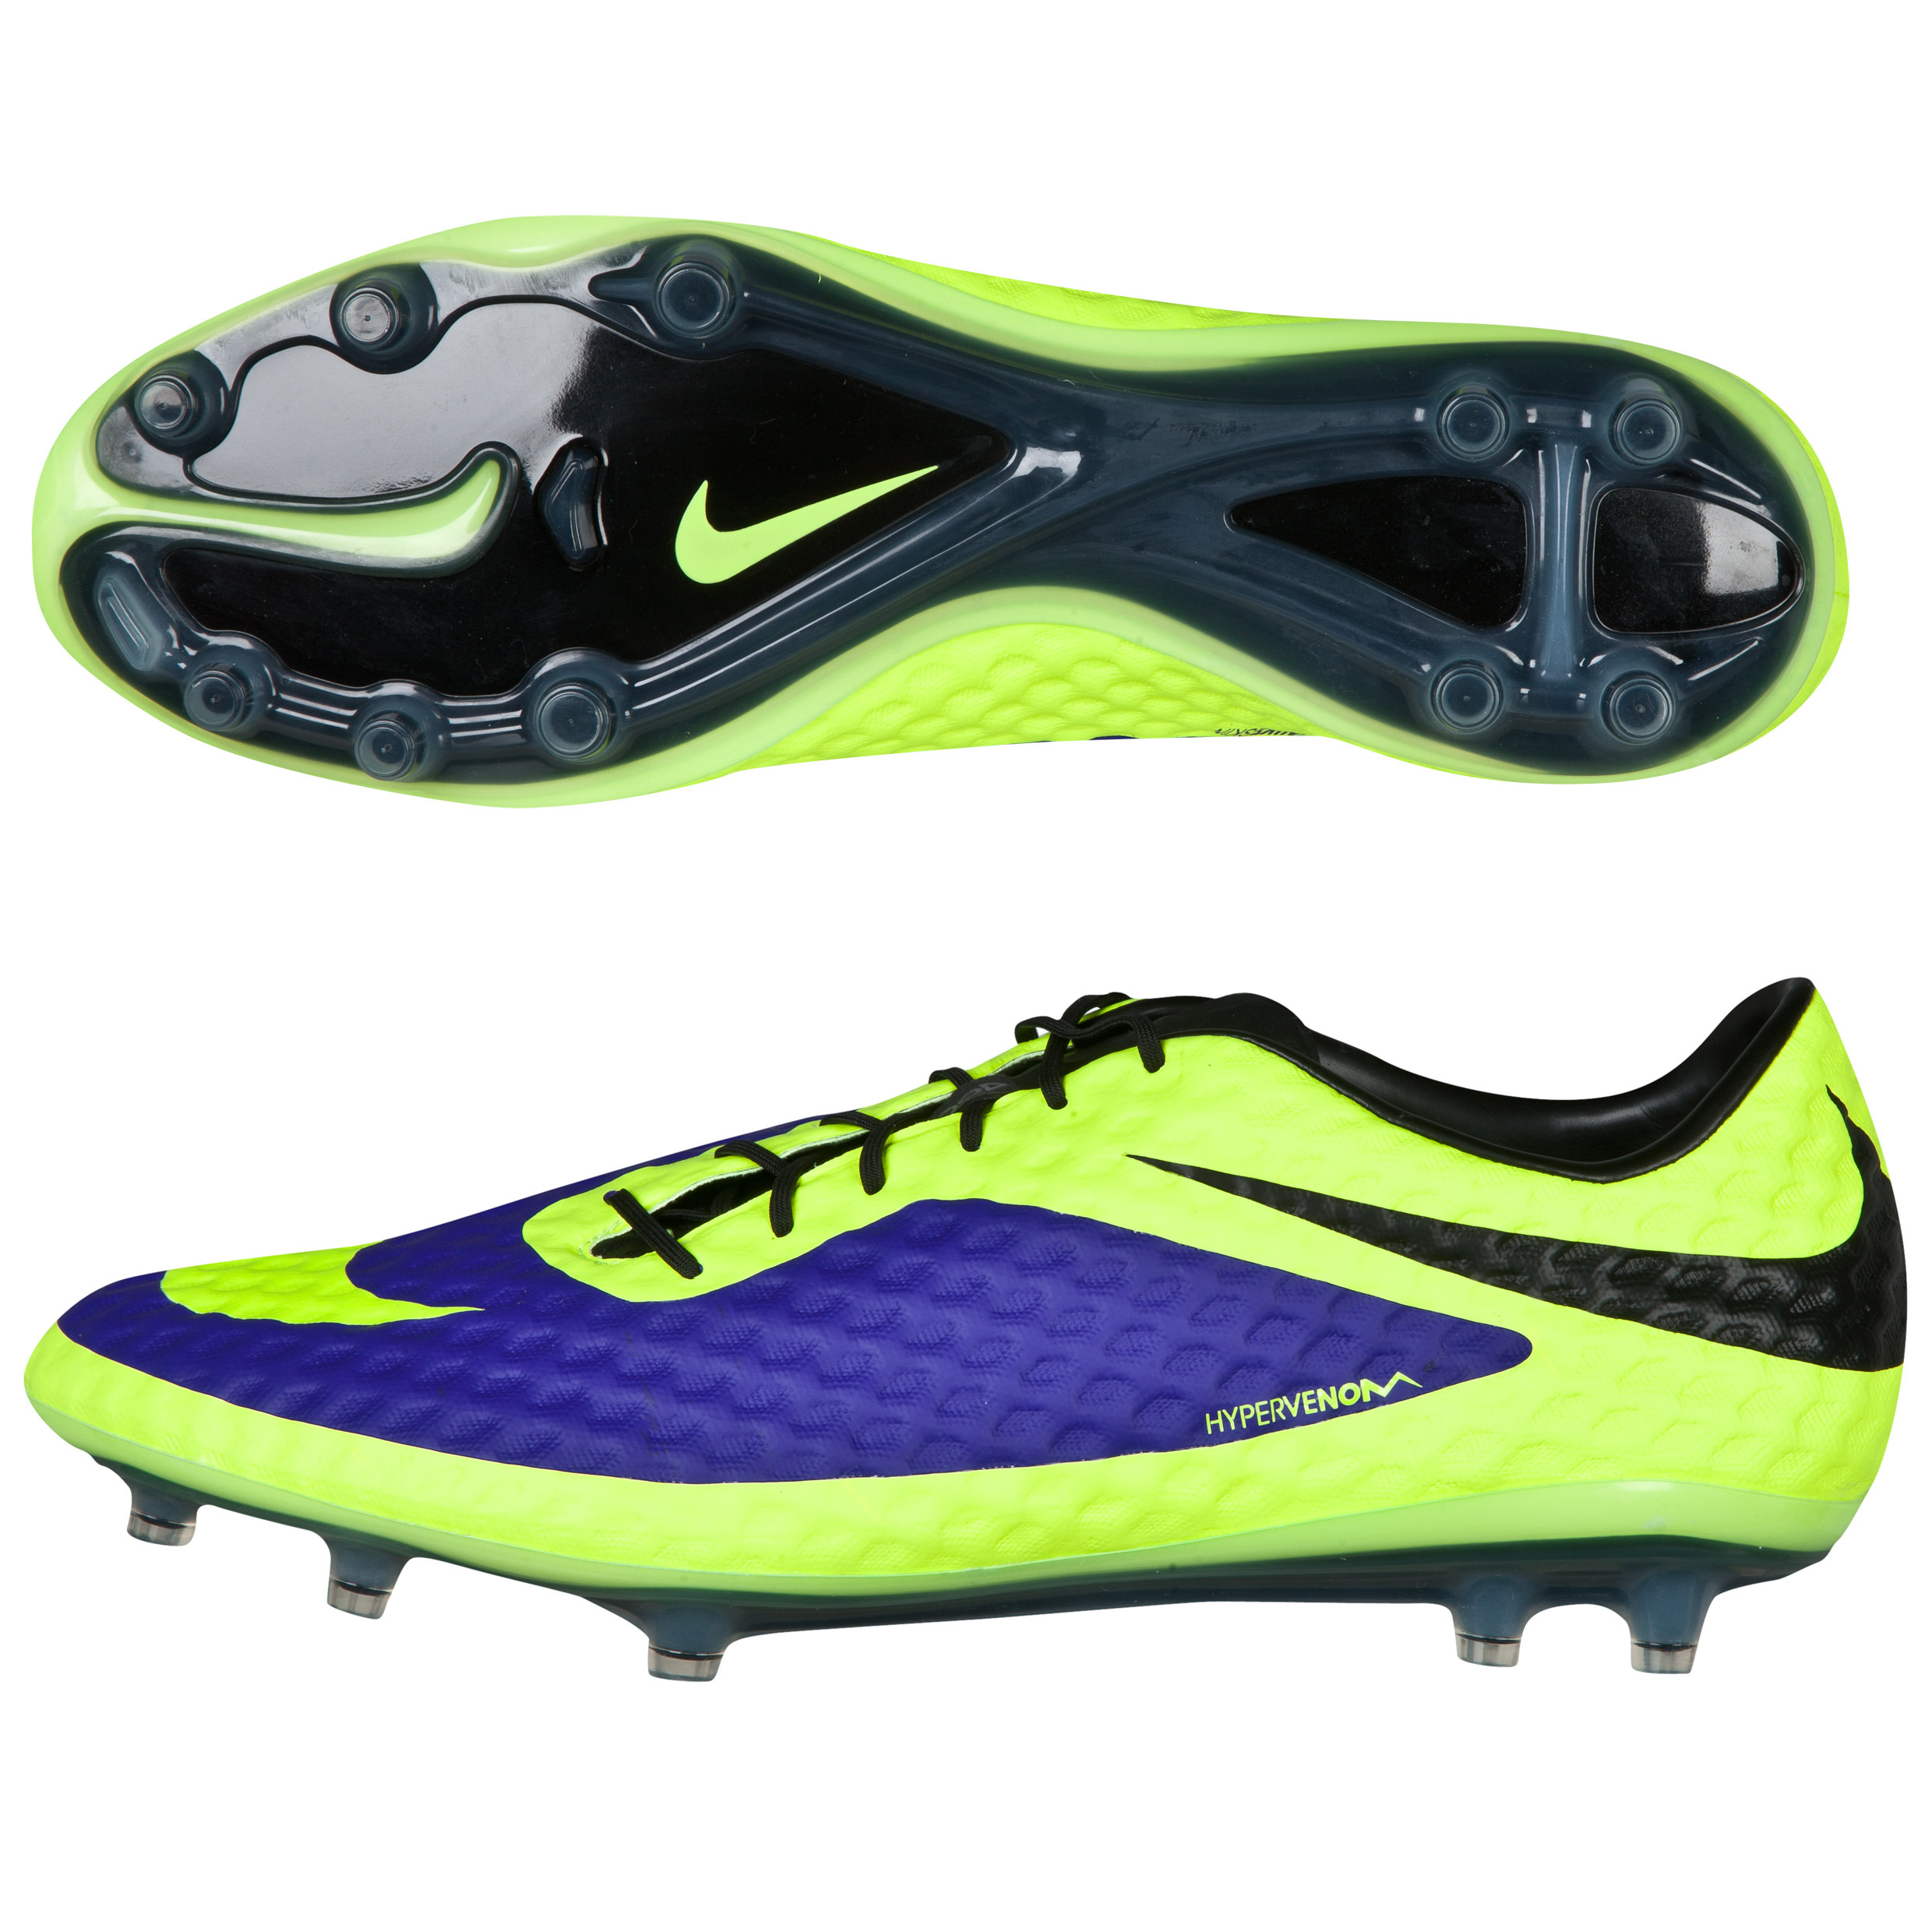 Hypervenom Phantom FG Electro Purple/Volt/Black Purple